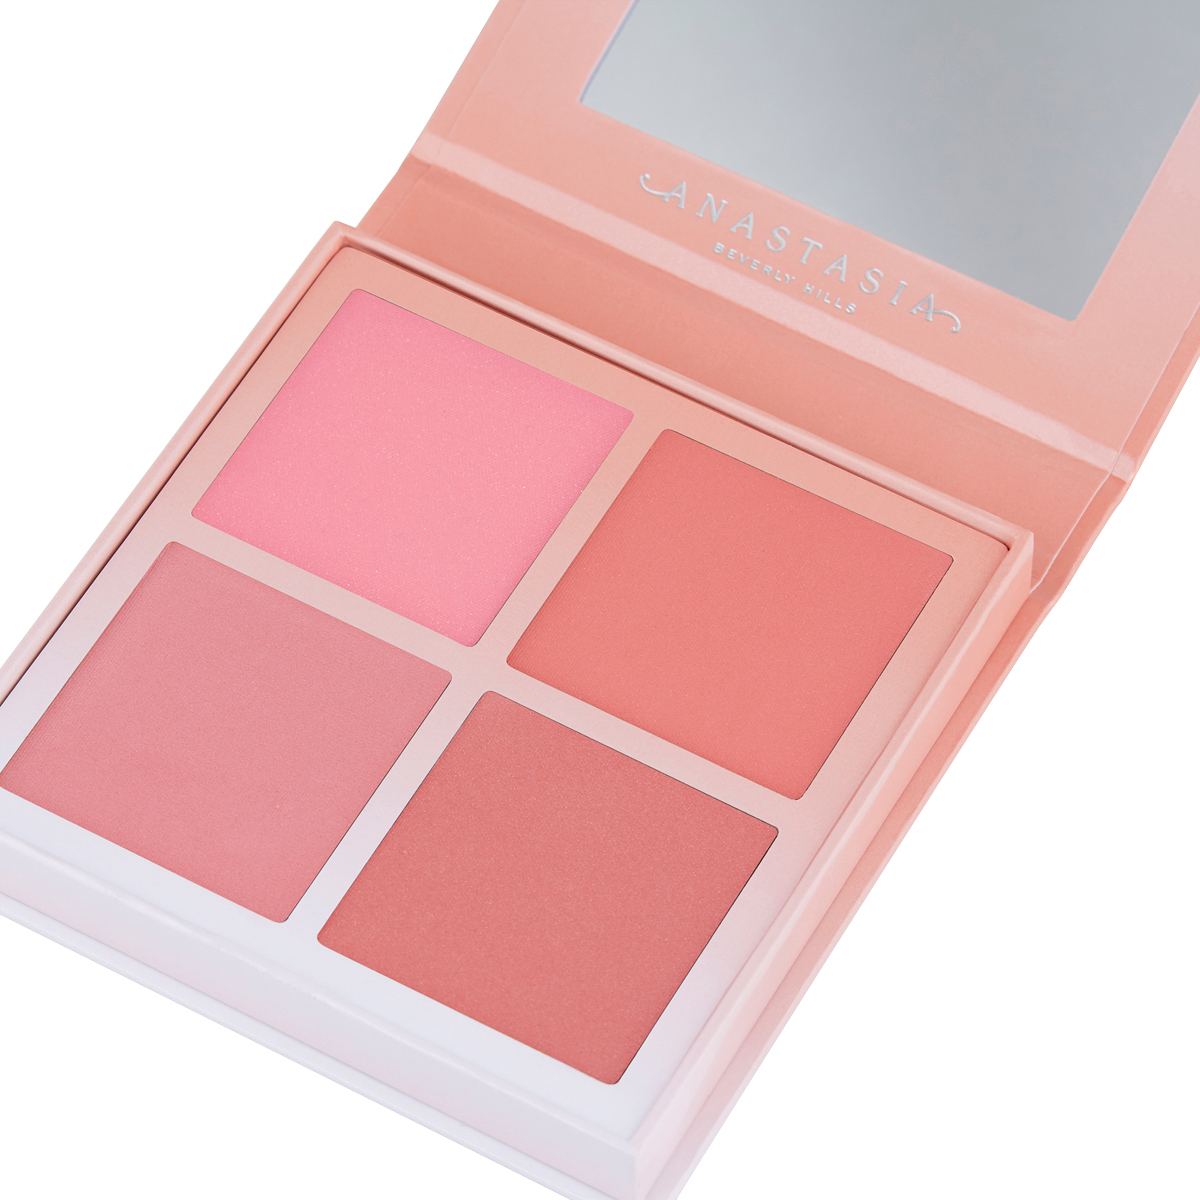 Blush Kits - Radiant